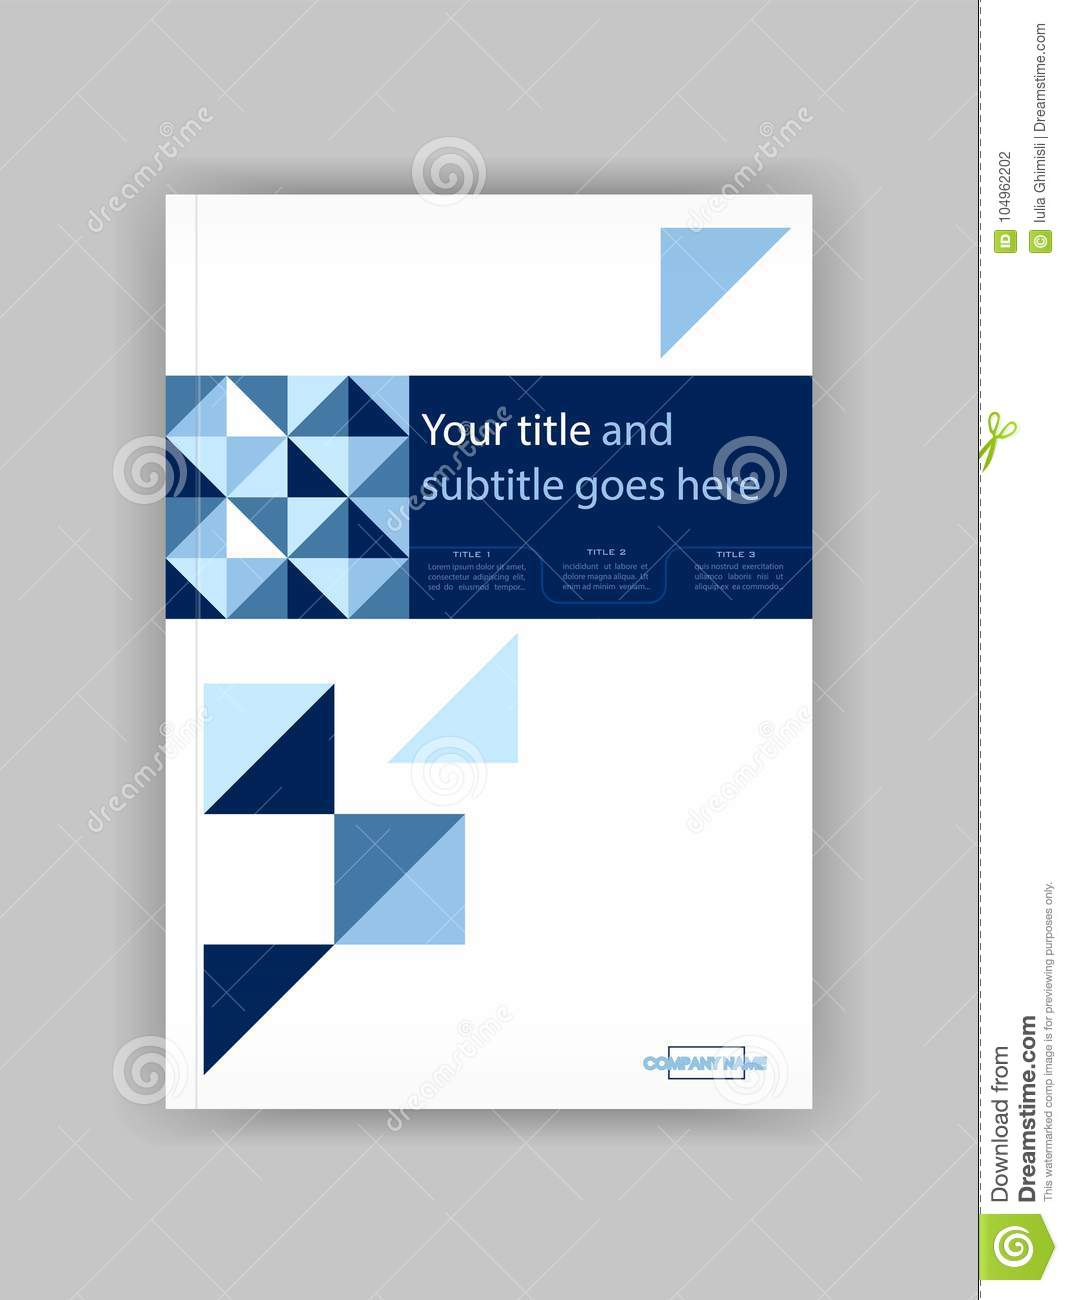 Business Book Cover Design Template : Blue a business book cover design template good for